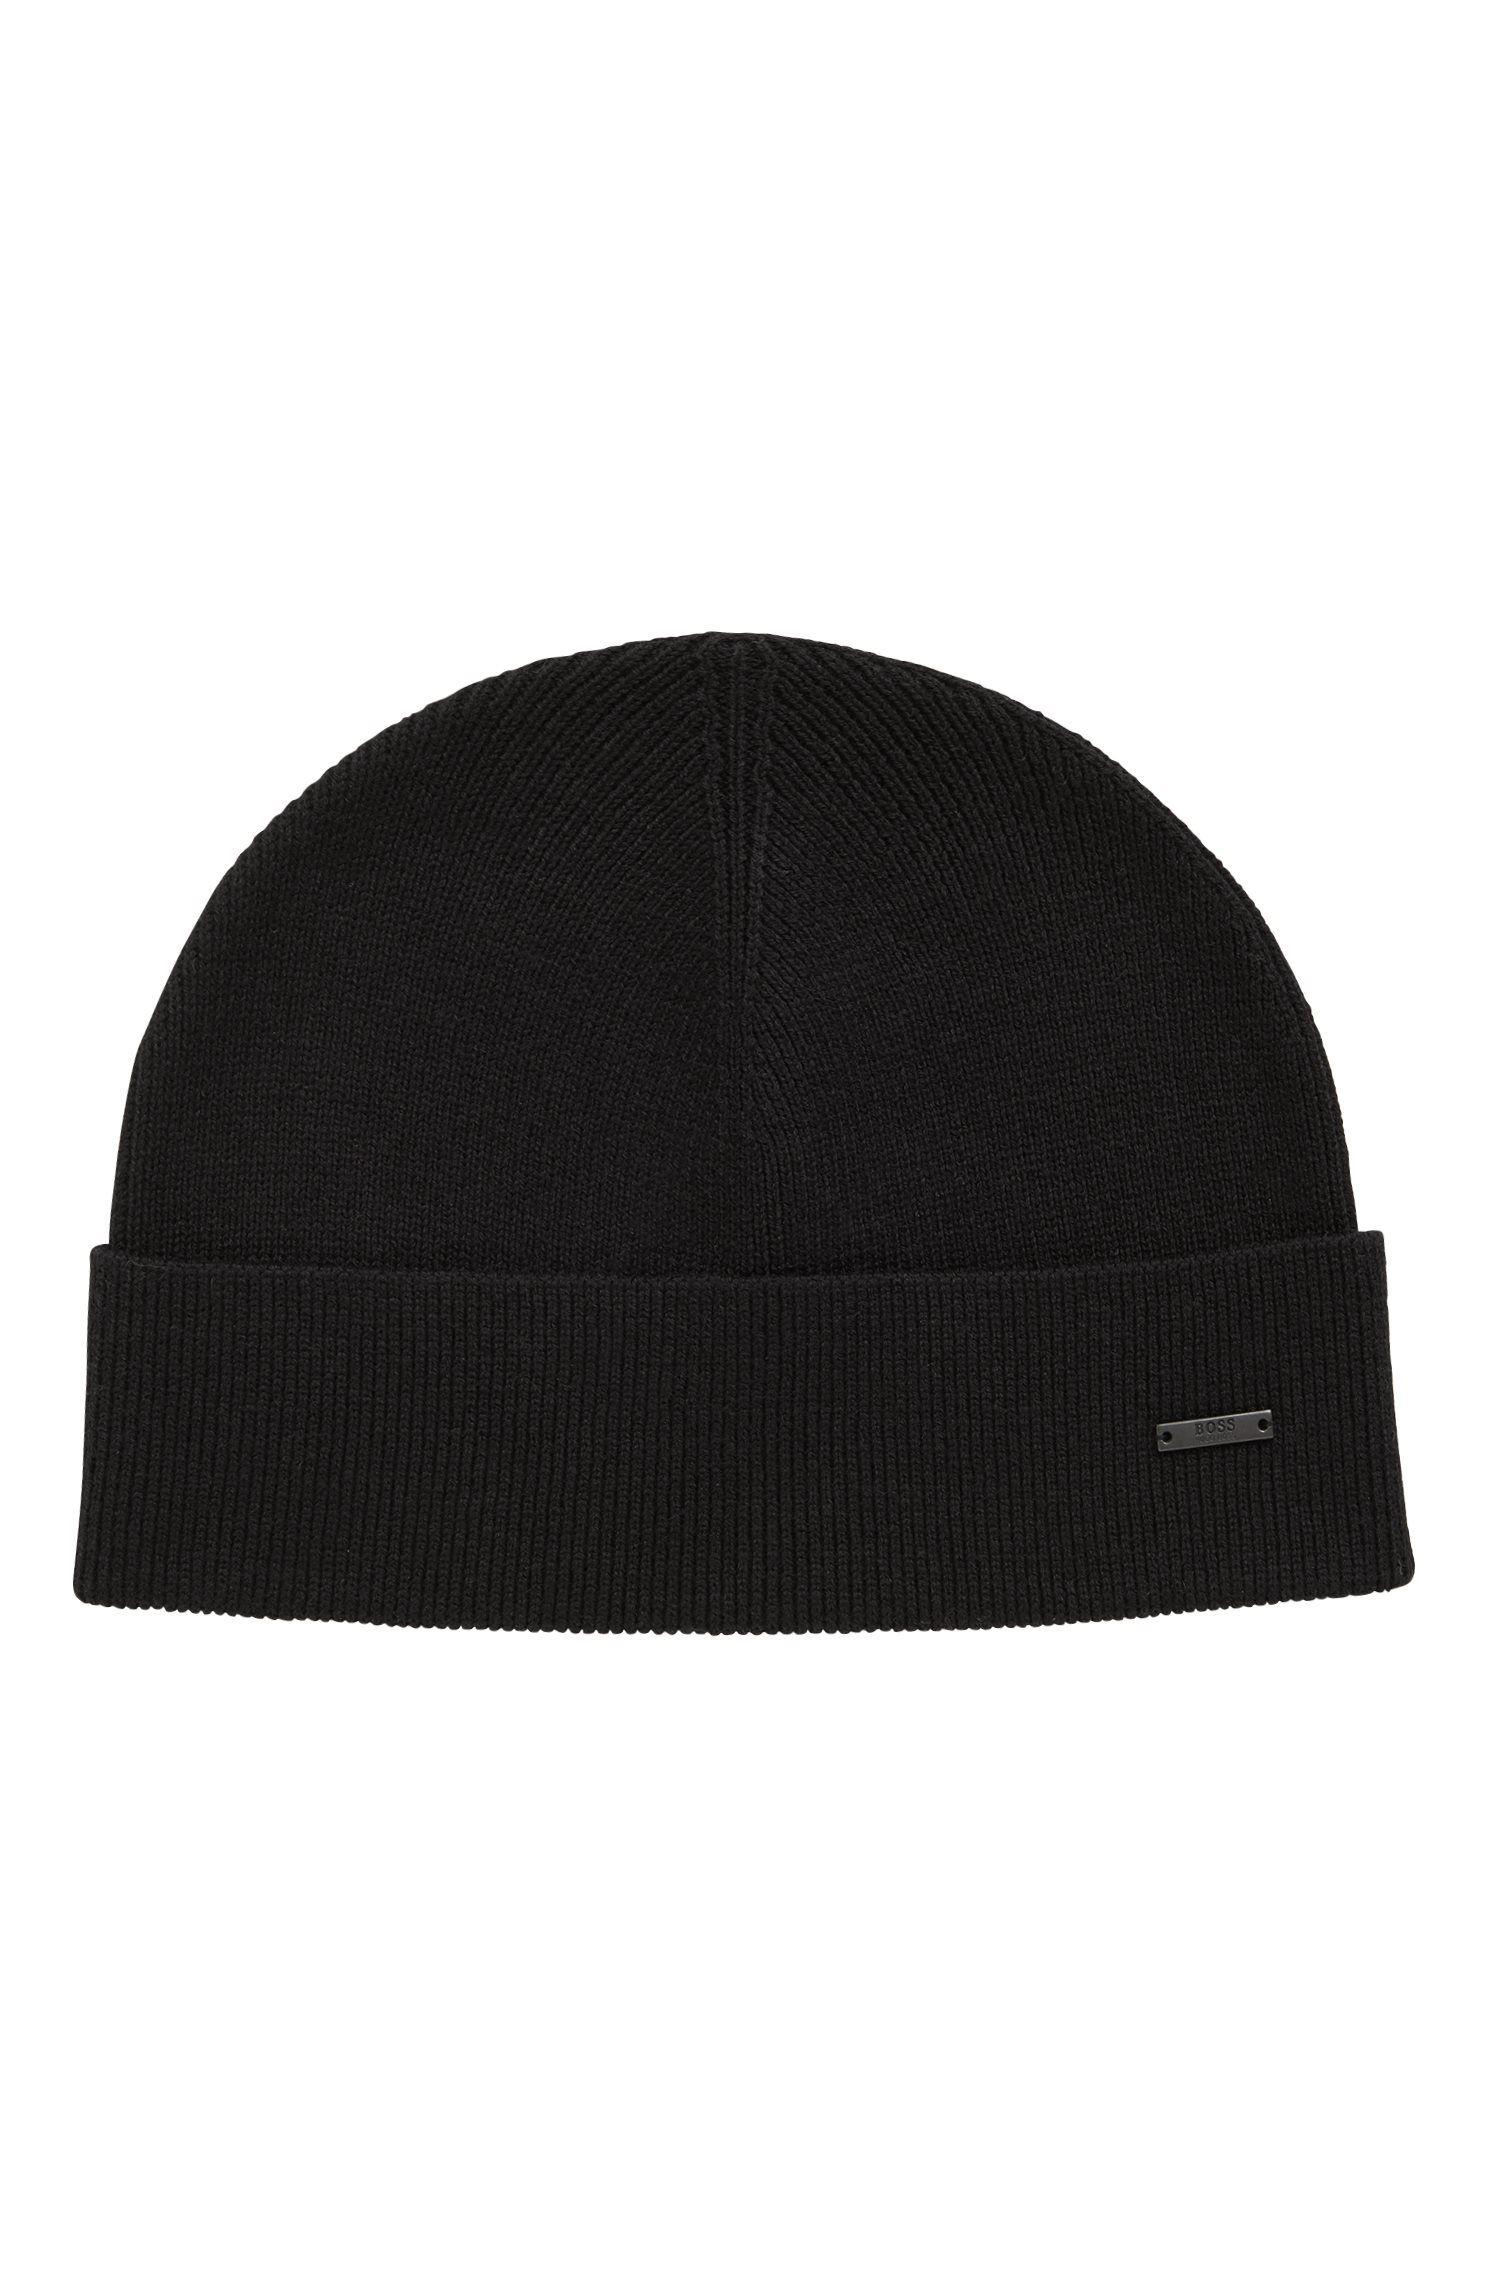 Knitted beanie hat with metal logo badge, Black